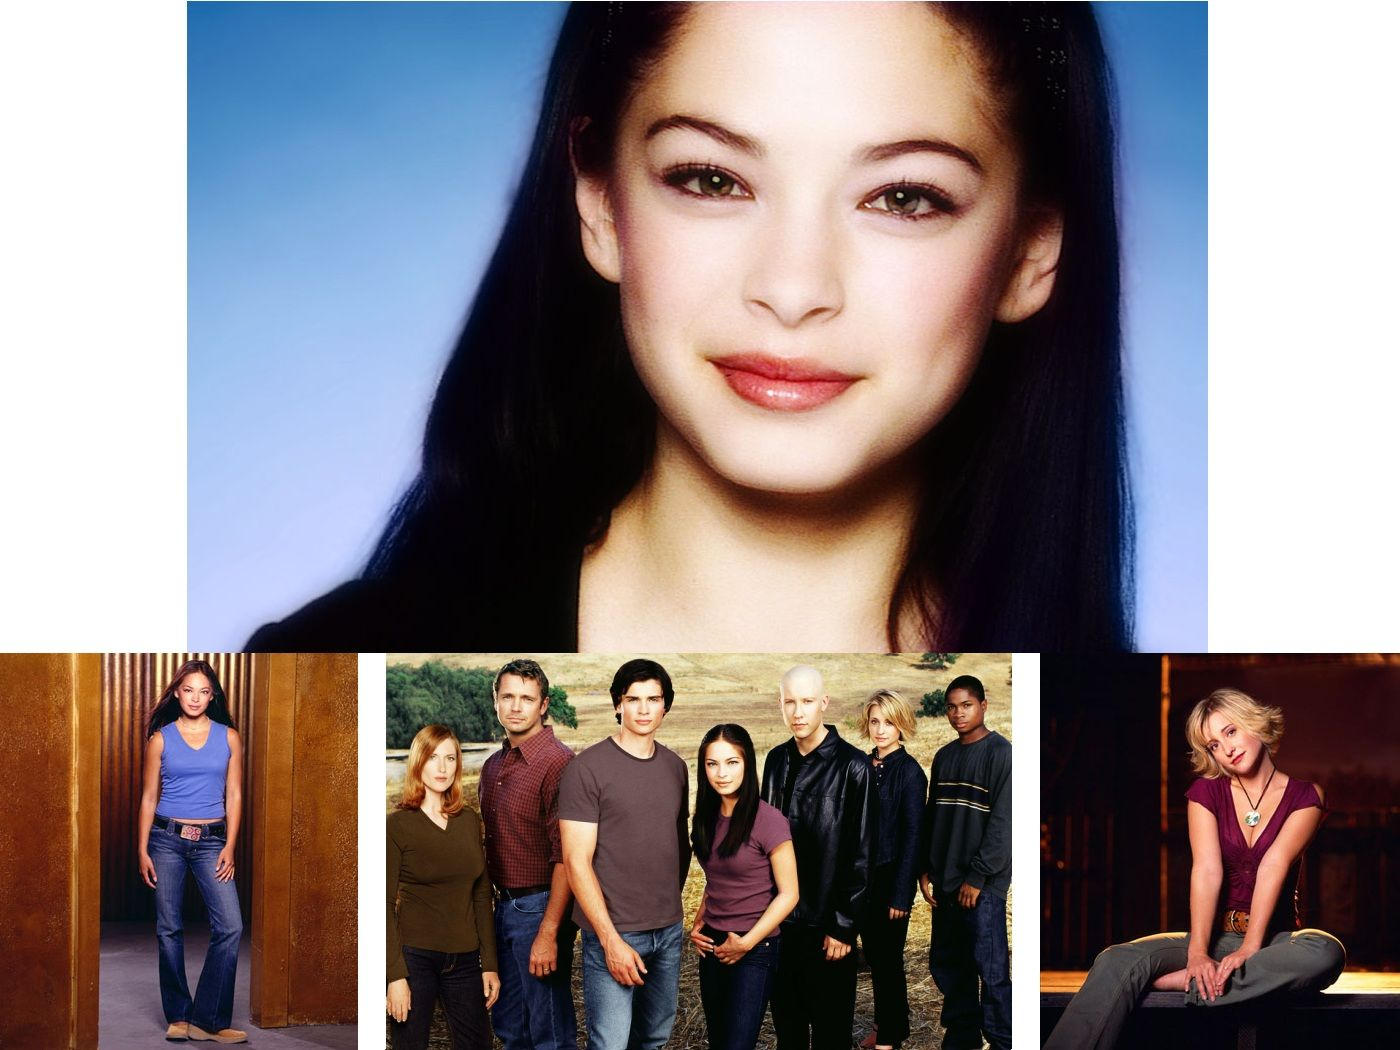 Smallville Cast Collage Wallpaper 1400x1050